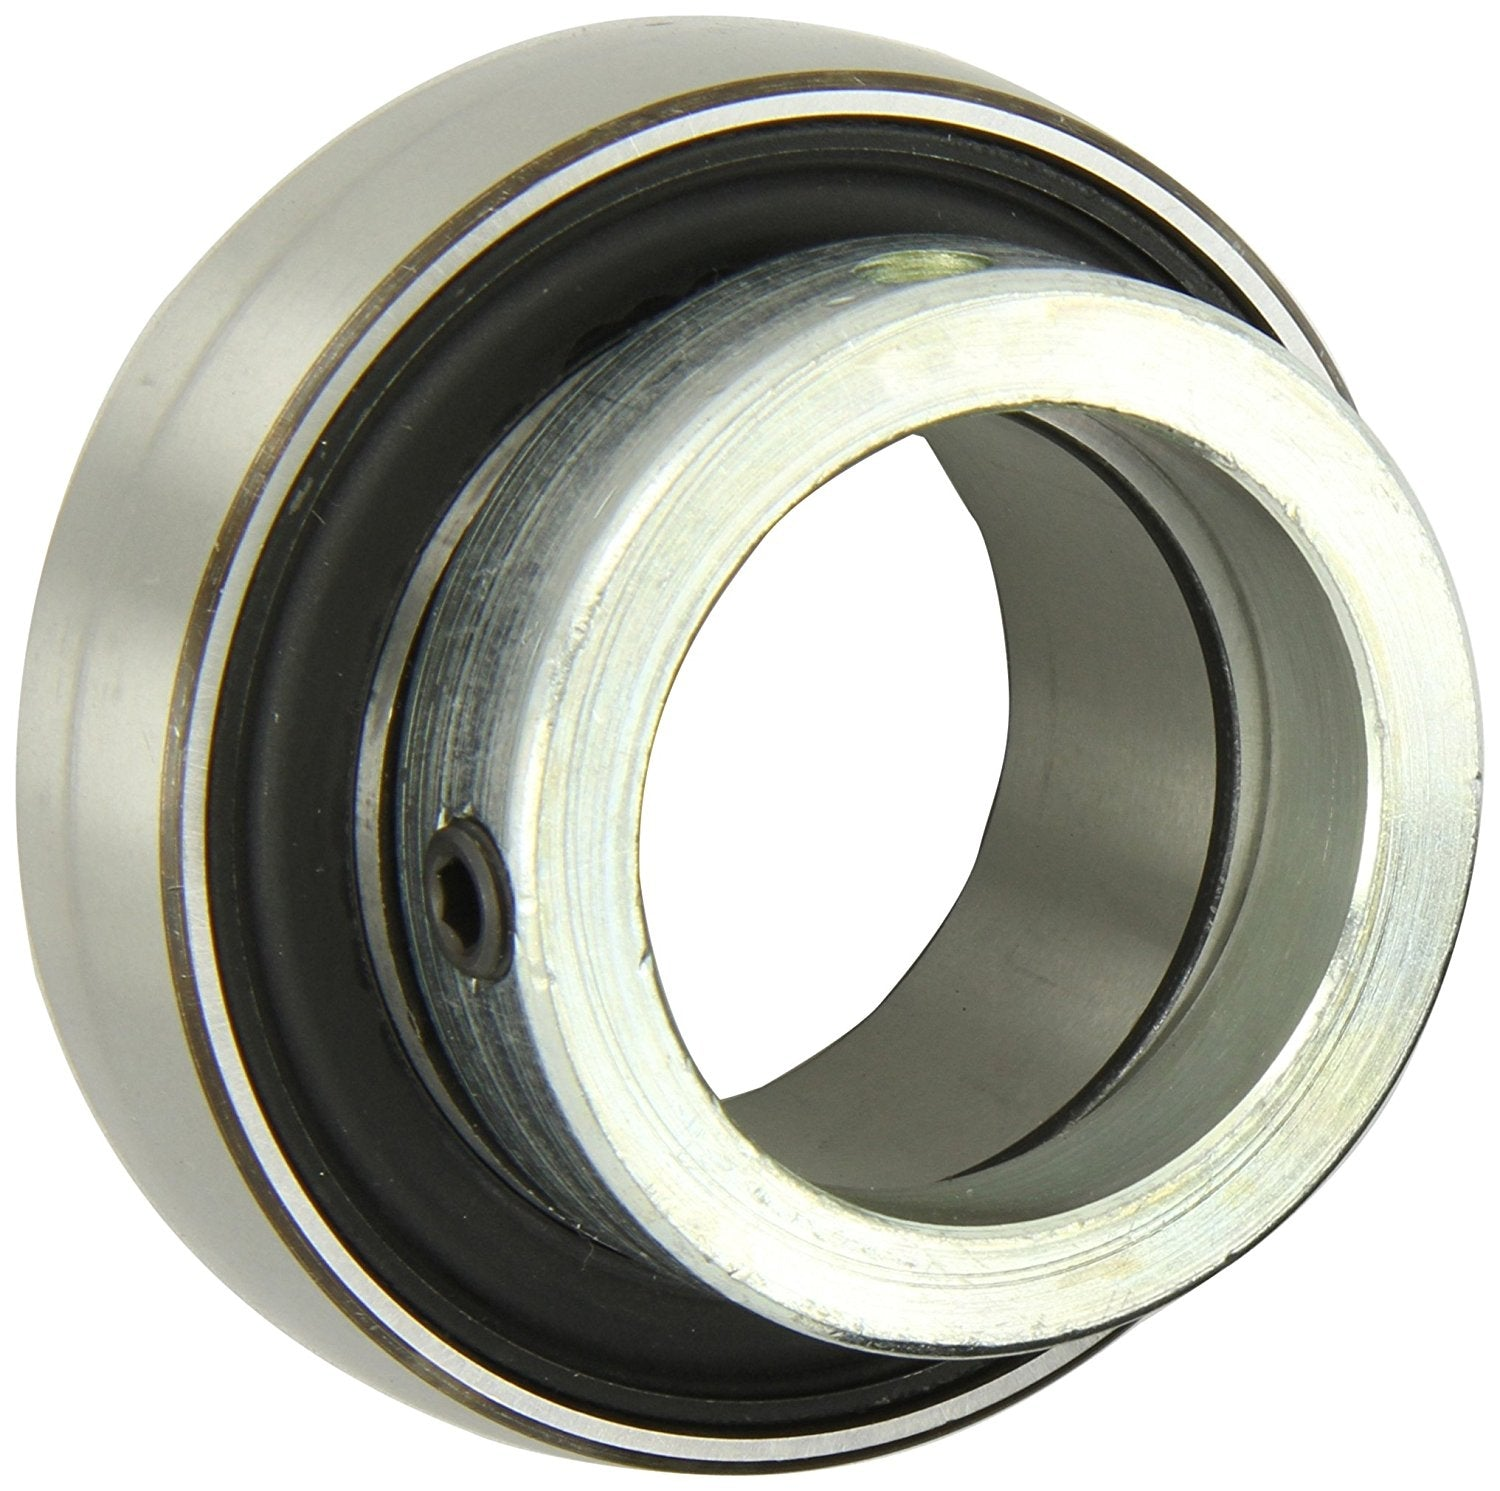 "SKF YET 205-015 Ball Bearing Insert, Eccentric Collar, Contact Seals, Regreasable, Steel, 15/16"" Bore, 52 mm OD , 15 mm Outer Ring Width"